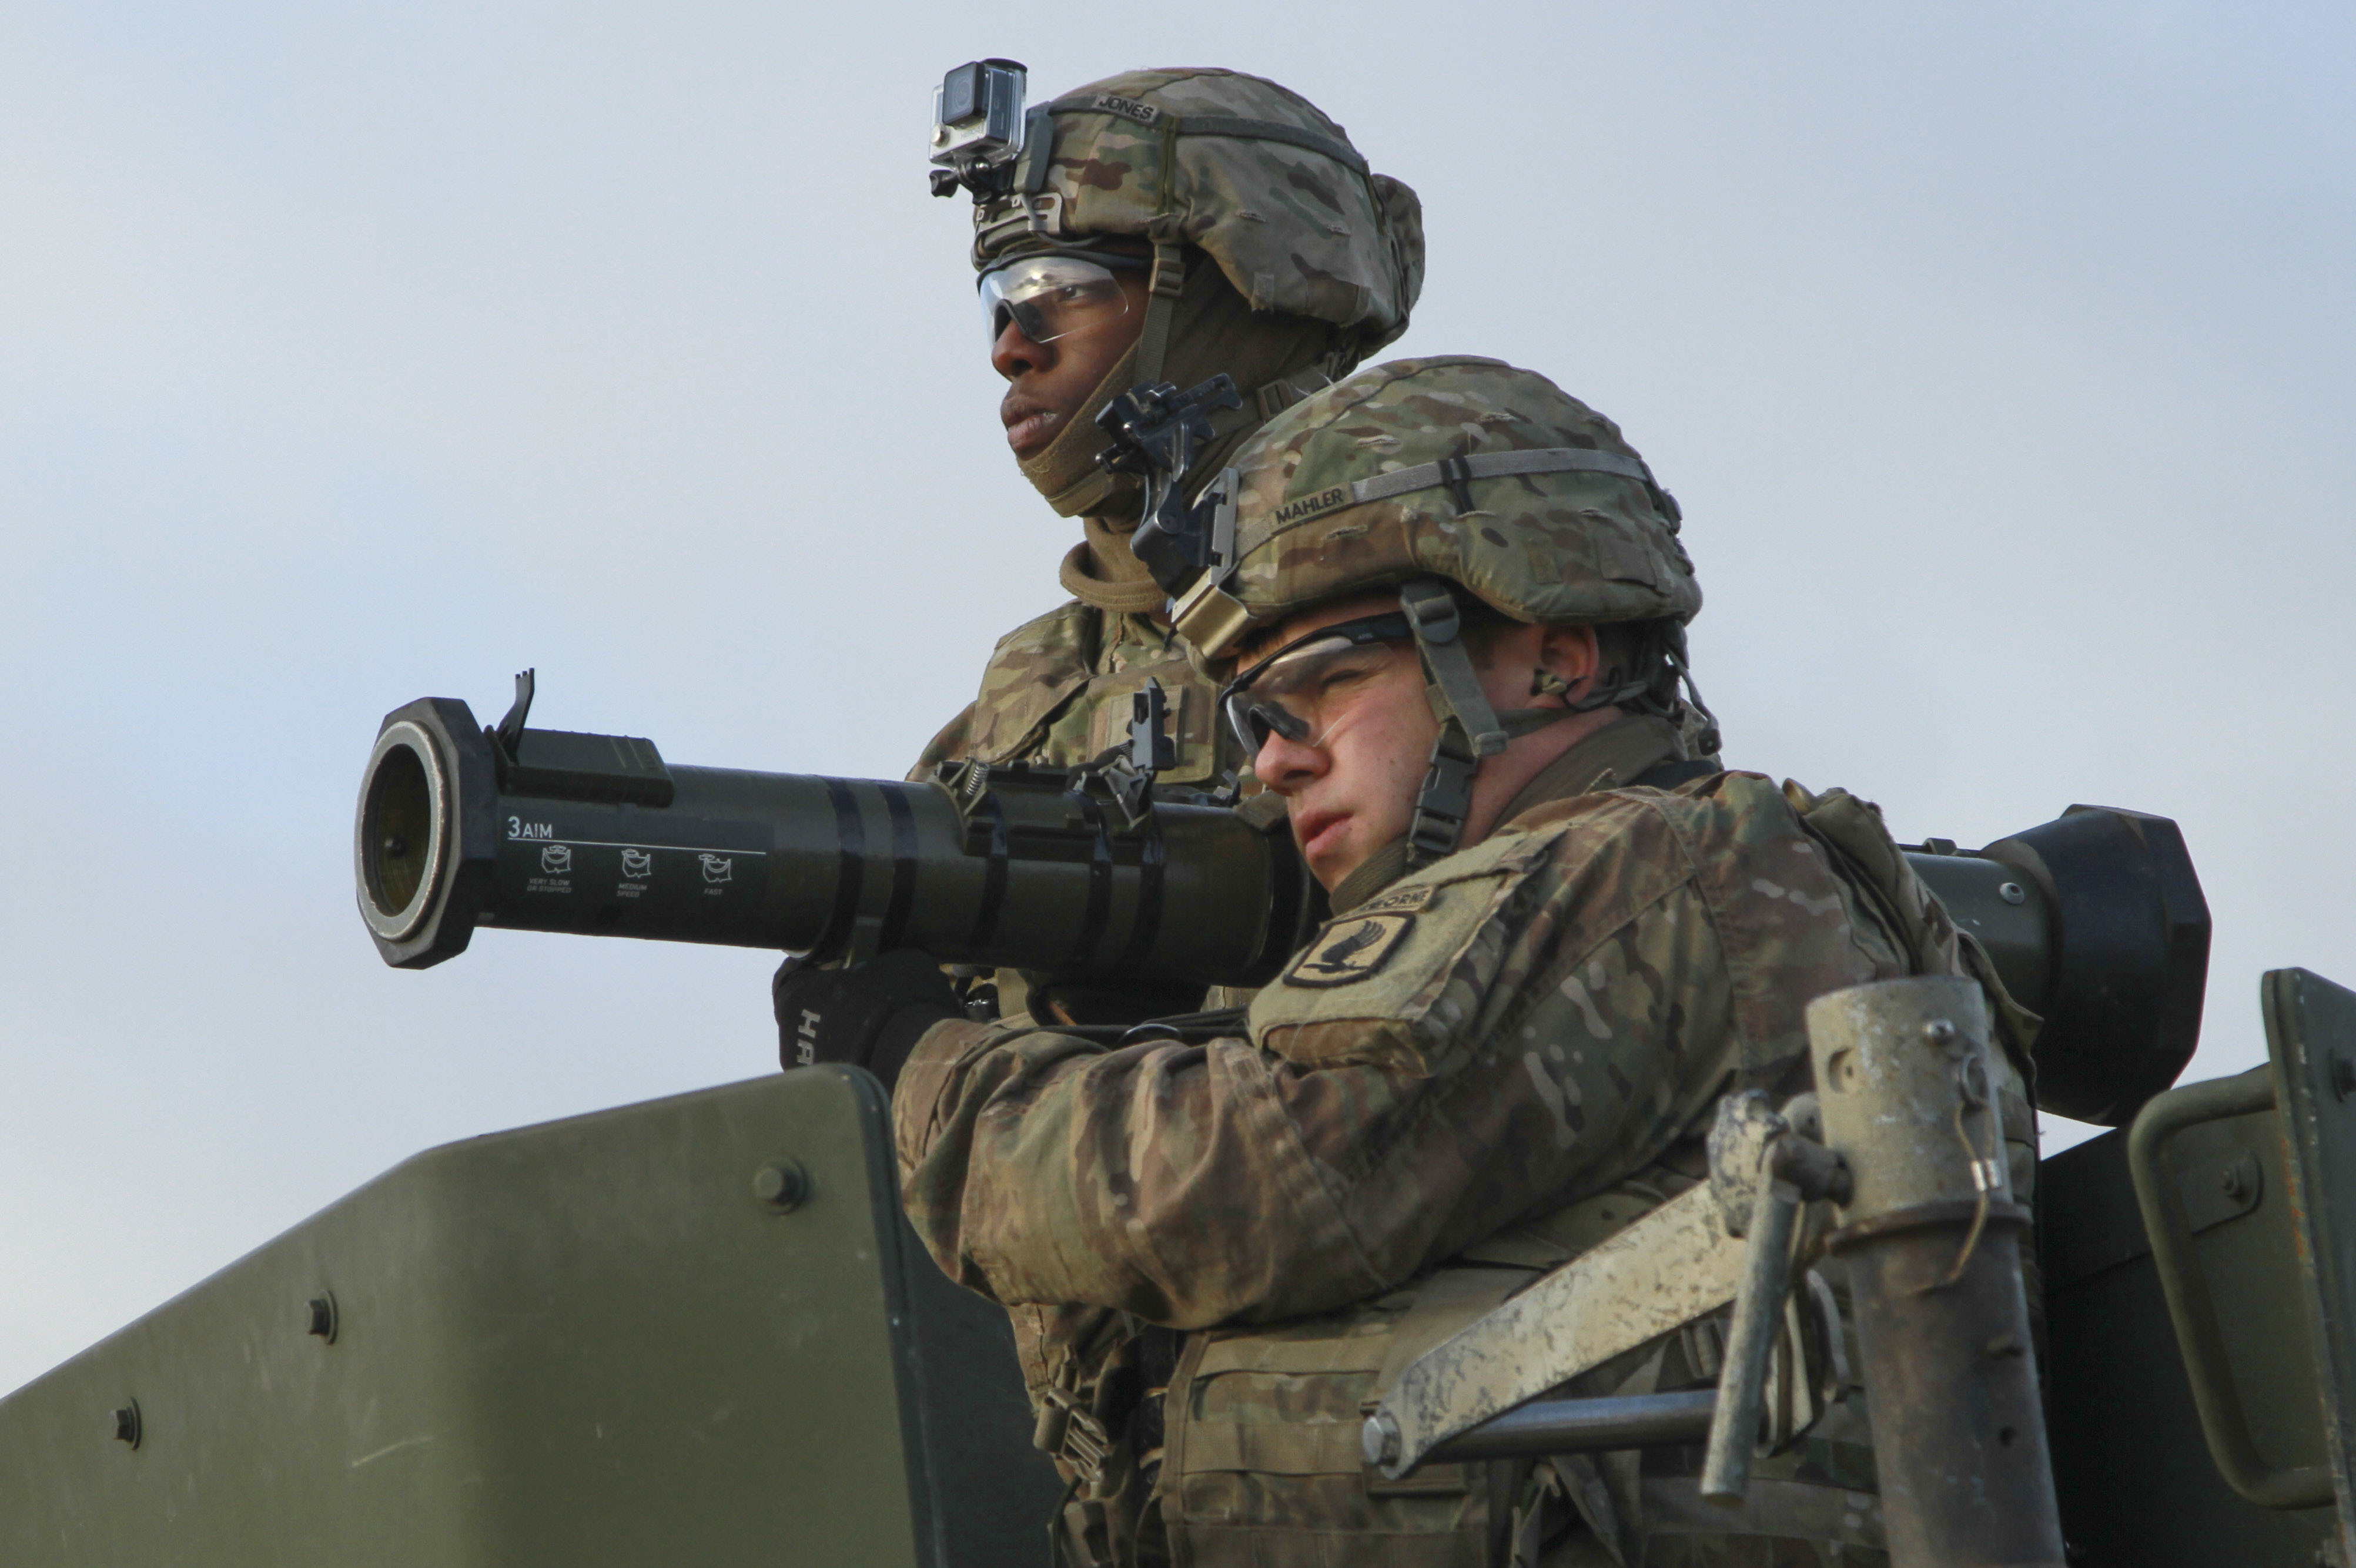 "DRAWSKO POMORSKIE, Poland – Spc. Joseph Mahler, Paratrooper, Company D, 2nd Battalion, 503rd Infantry Regiment, 173rd Airborne Brigade, acquires his target and prepares to fire 9mm tracer rounds from an M136 AT4 anti-tank weapon alongside Spc. Jacquez Jones, Paratrooper, D Co., 2nd Bn., 503rd Inf. Regt., during anti-tank training with Polish allies from the 16th Airborne Battalion, 6th Airborne Brigade, in Studnica, Poland Oct. 29, 2016. Paratroopers were able to hone their marksmanship skills with the AT4 anti-tank weapon, RPG-7D Anti-Tank Grenade Launcher, M320 grenade launcher and .50-caliber machine guns. The ""Sky Soldiers"" of D Co., 2nd Bn., 503rd Inf. Regt., are on a training rotation in support of Operation Atlantic Resolve, a U.S. led effort in Eastern Europe that demonstrates U.S. commitment to the collective security of NATO and dedication to enduring peace and stability in the region. (U.S. Army photo by Sgt. Lauren Harrah/Released)"